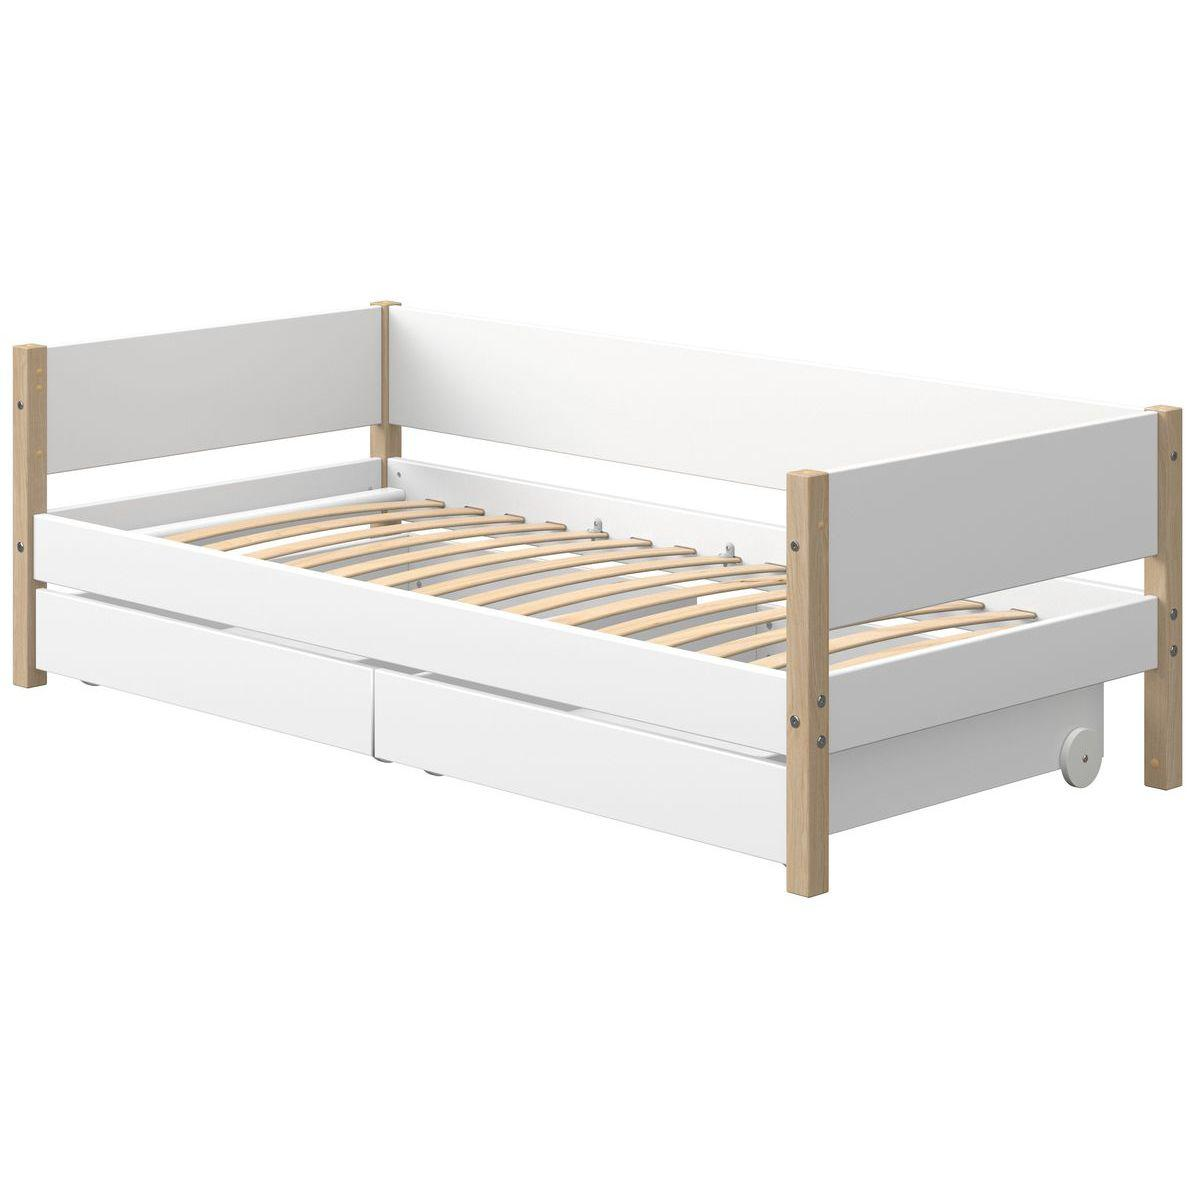 Cama-sofá 90x200cm 2 cajones NOR Flexa roble-blanco